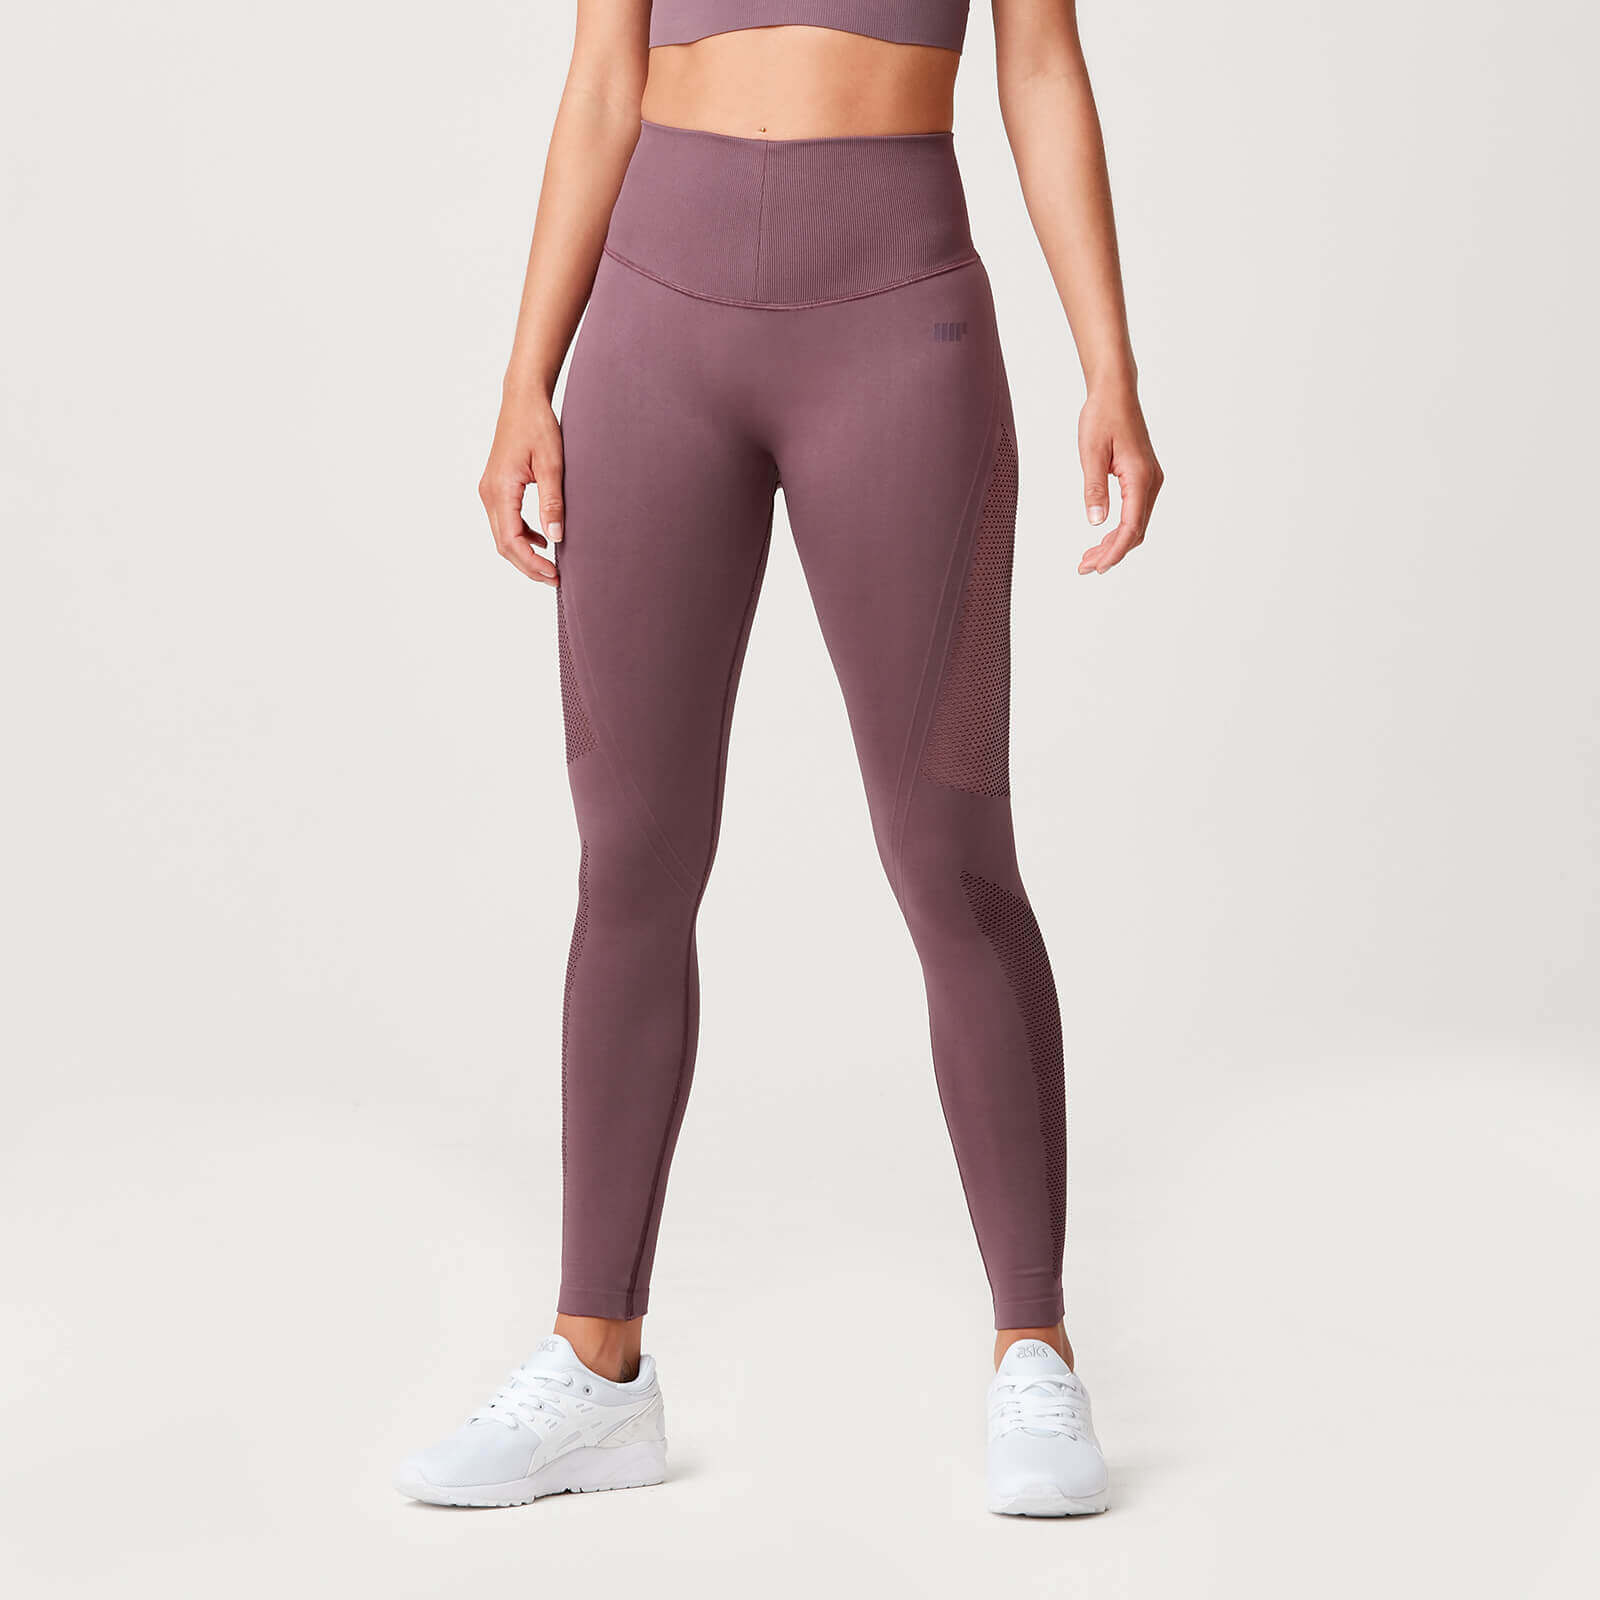 b1e7fc4576fa0 Luxe Seamless Leggings - Mauve Luxe Seamless Leggings - Mauve